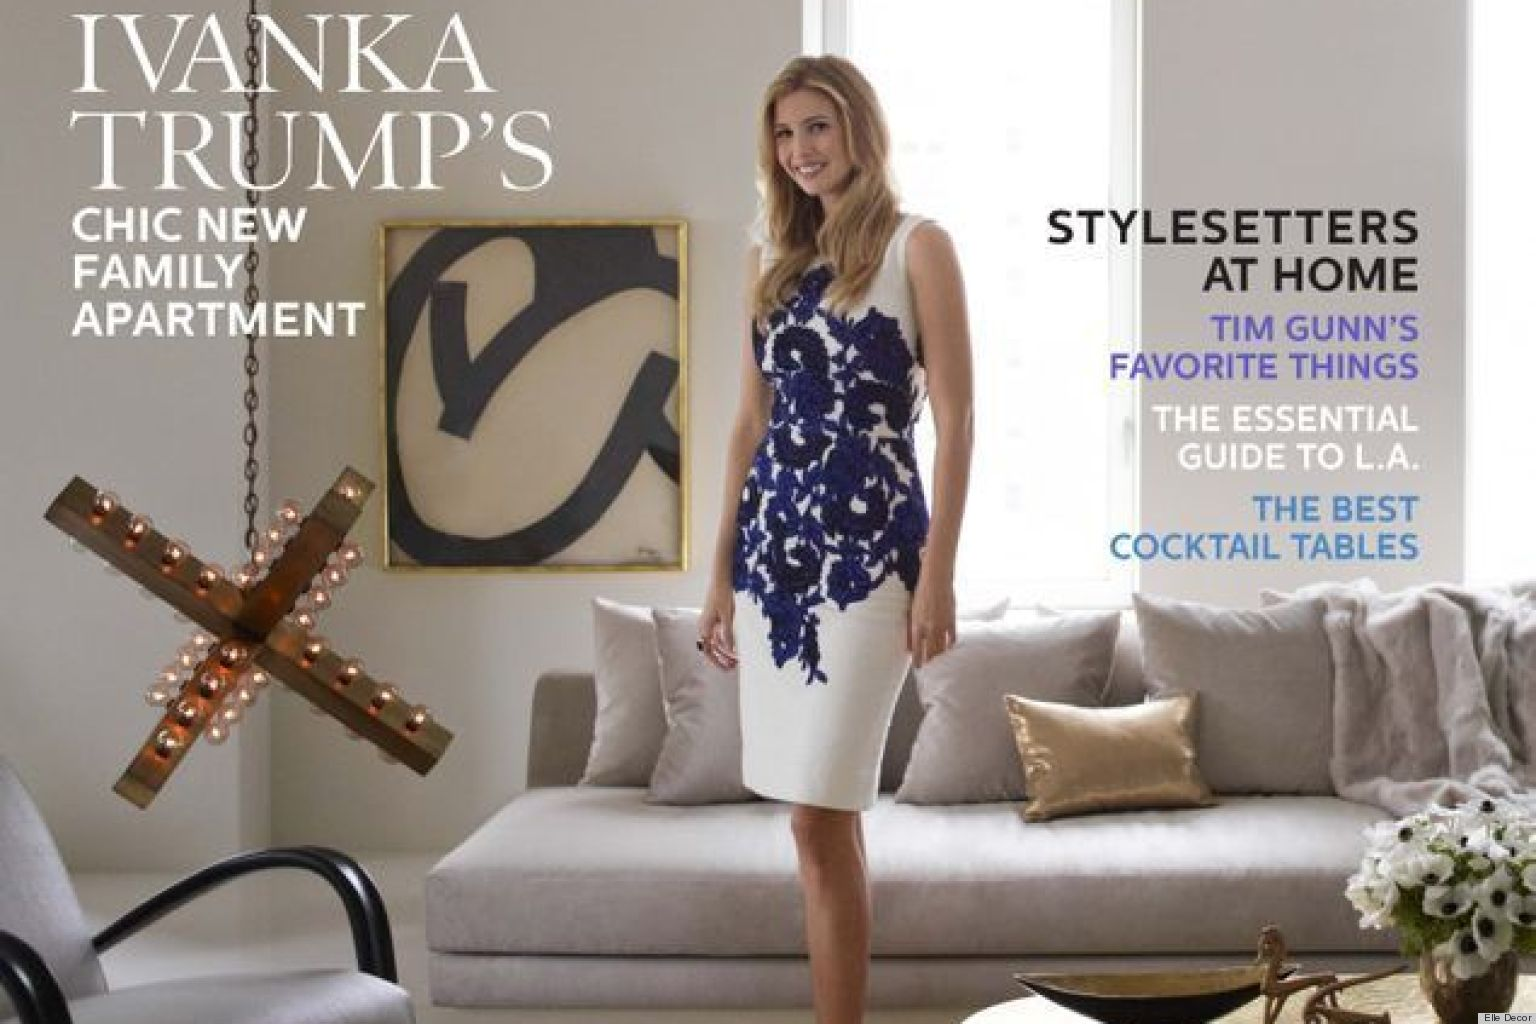 House Tour Ivanka Trump S Chic New York Apartment Featured In Elle Decor October 2017 Photos Huffpost